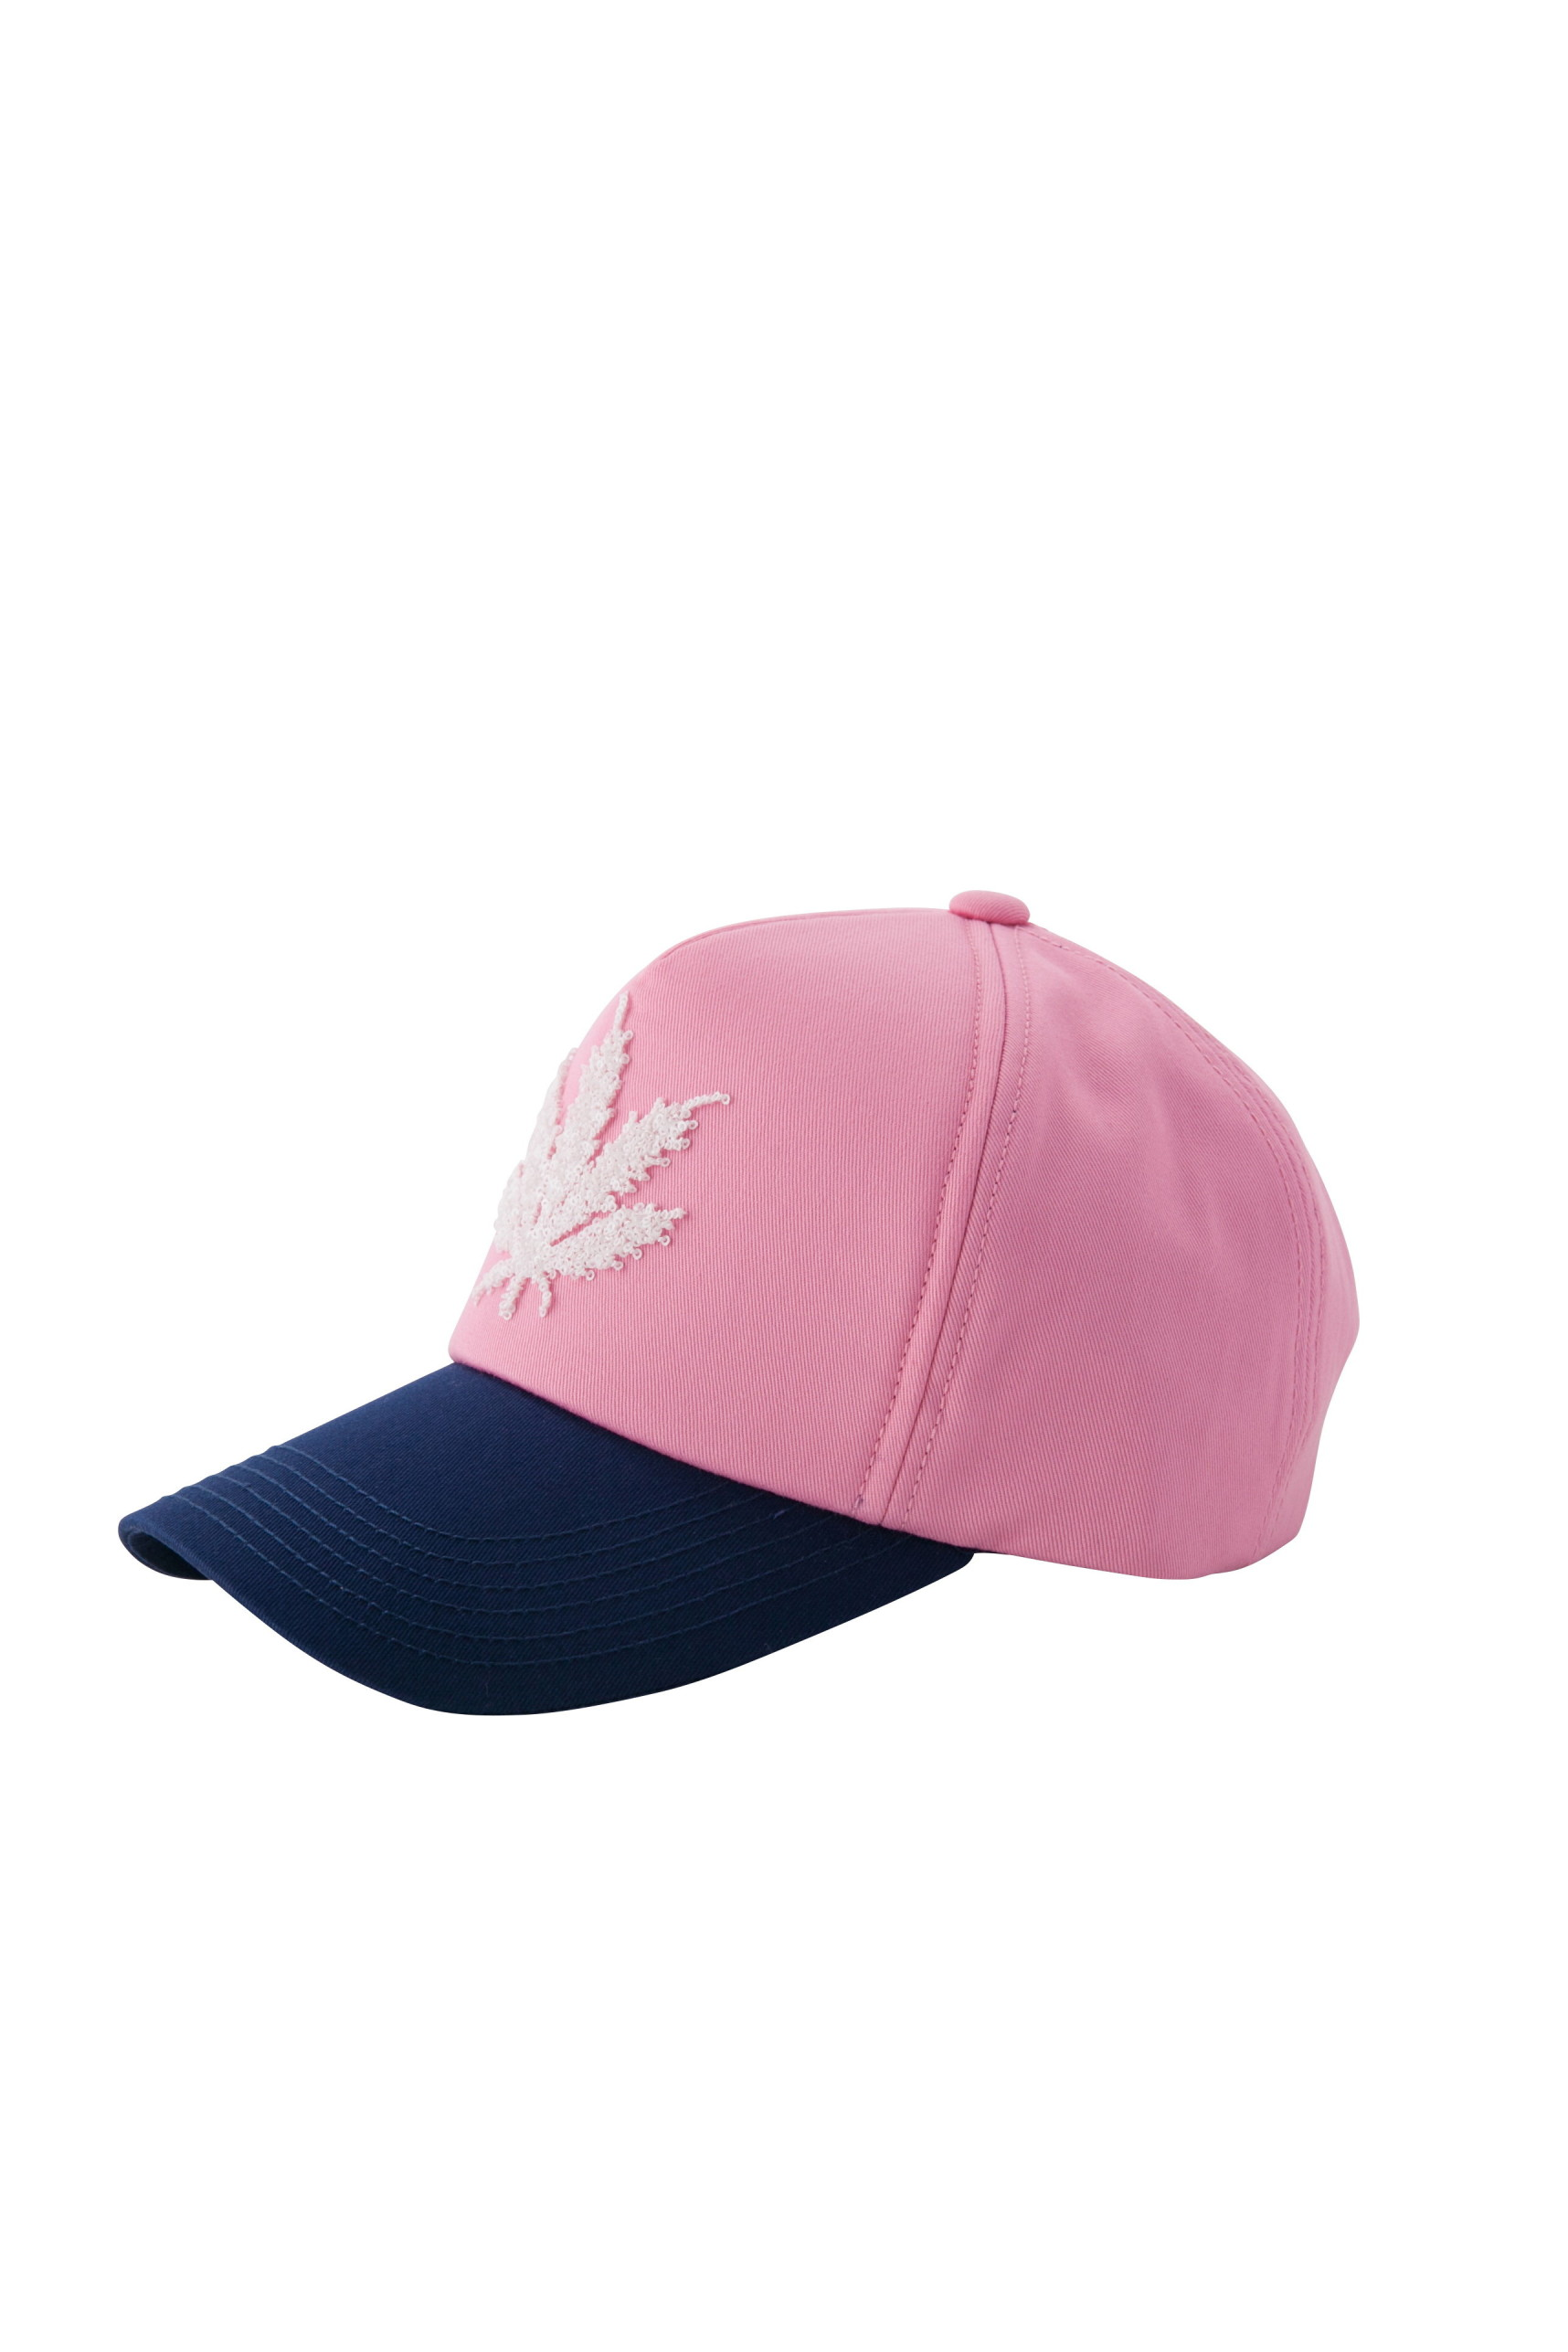 CAP WITH 3D SEQUIN LEAF EMBROIDERY(PINK-UNI)